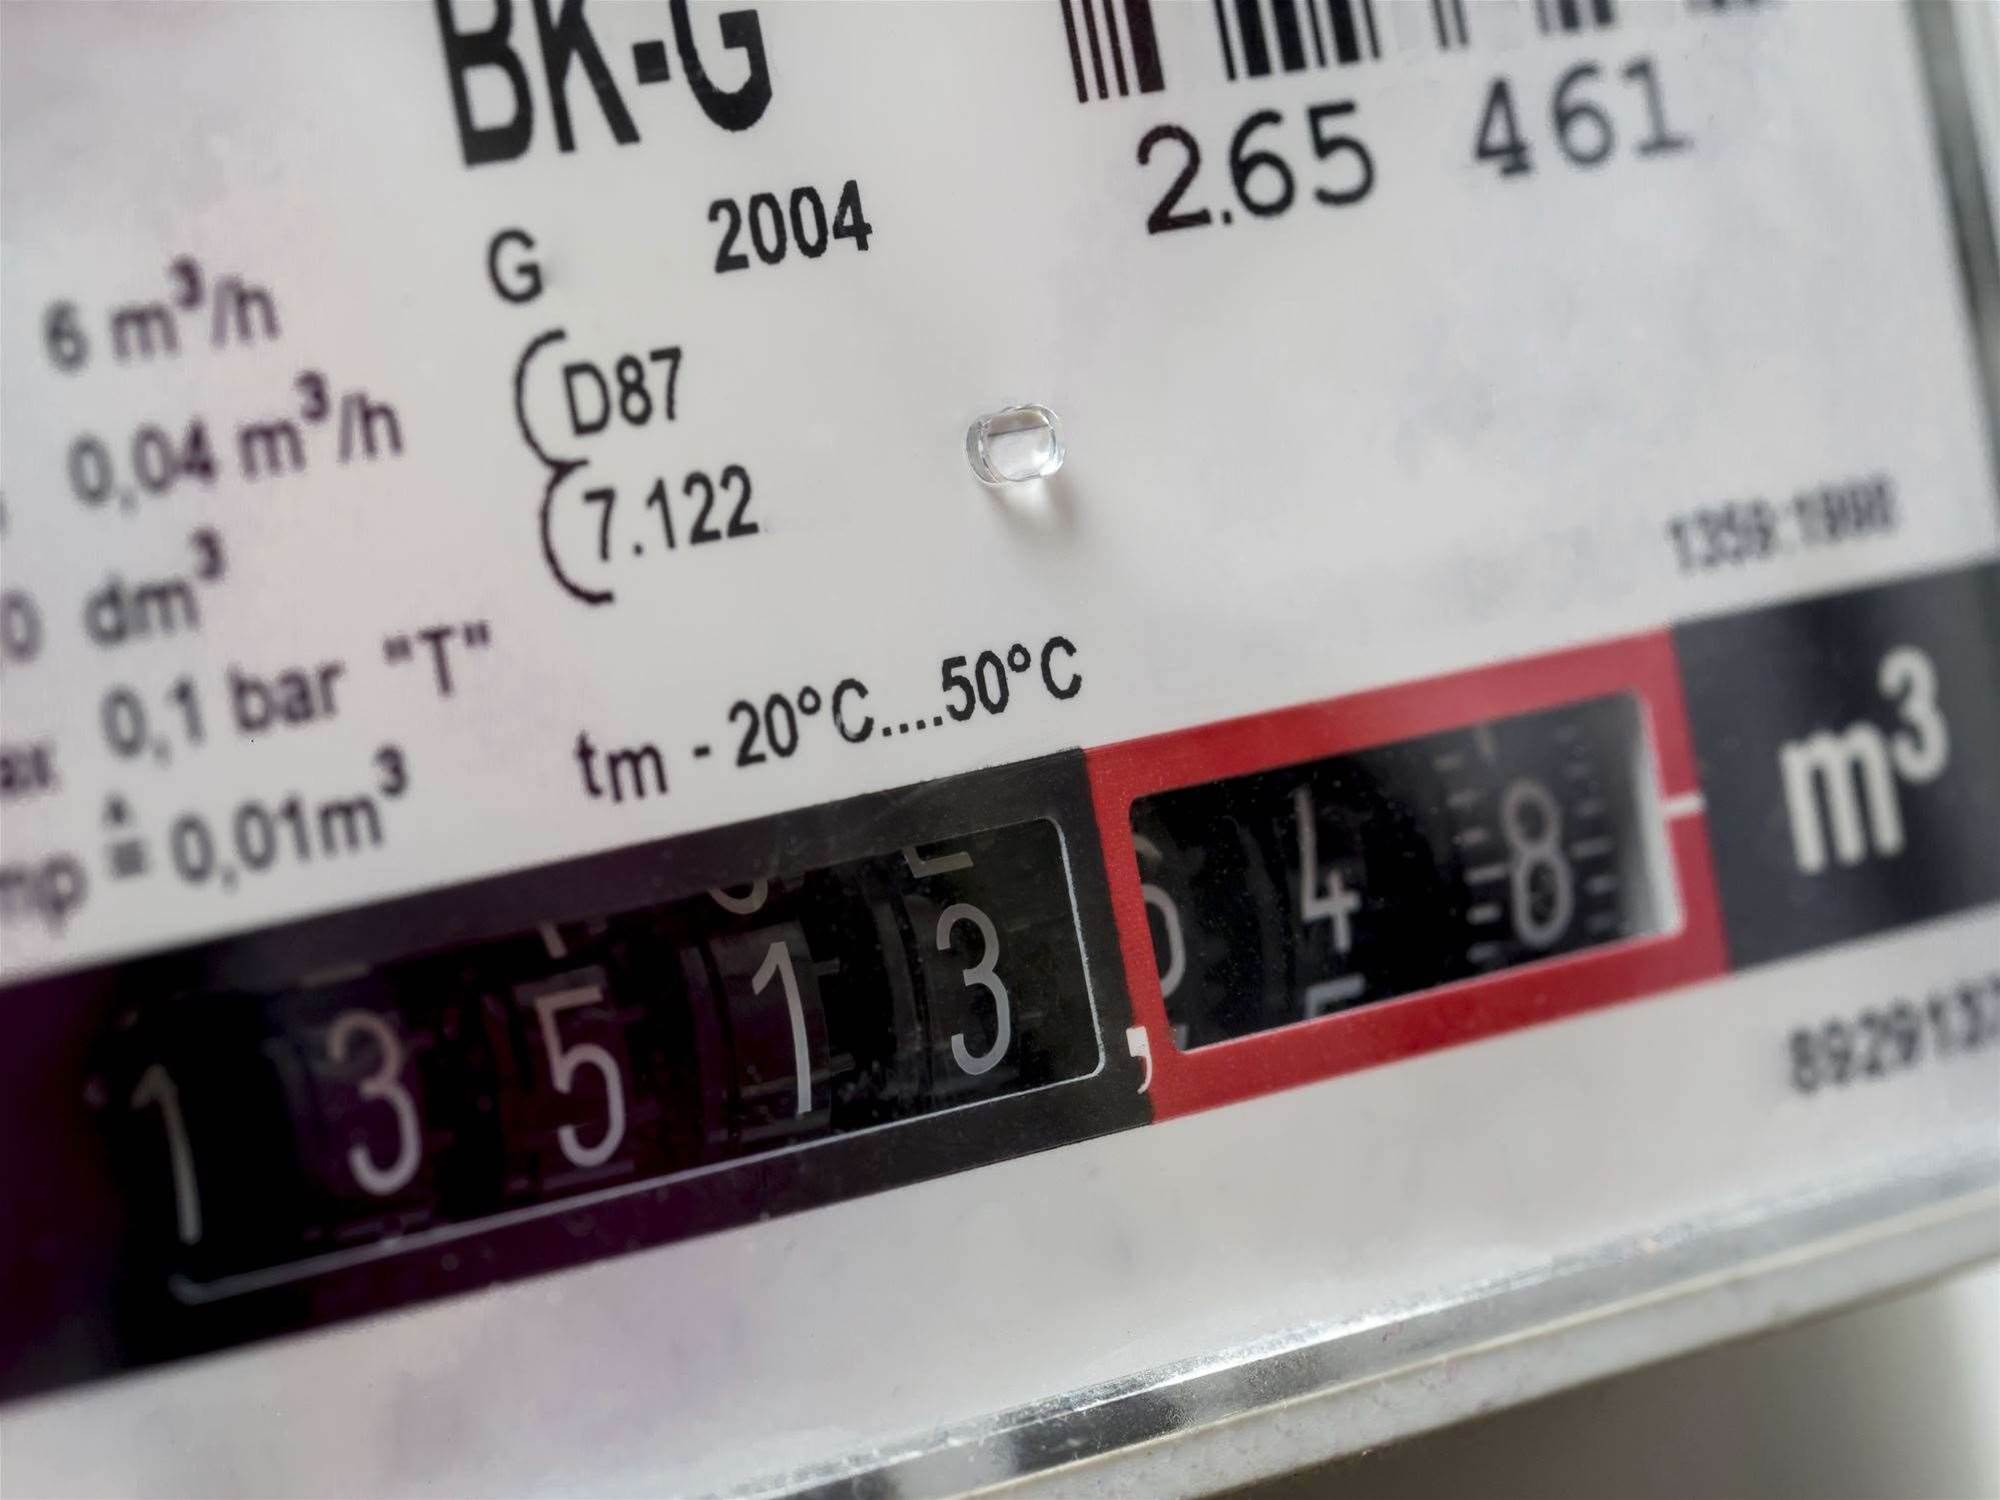 Canberra gas provider fails to keep pace with new billing system